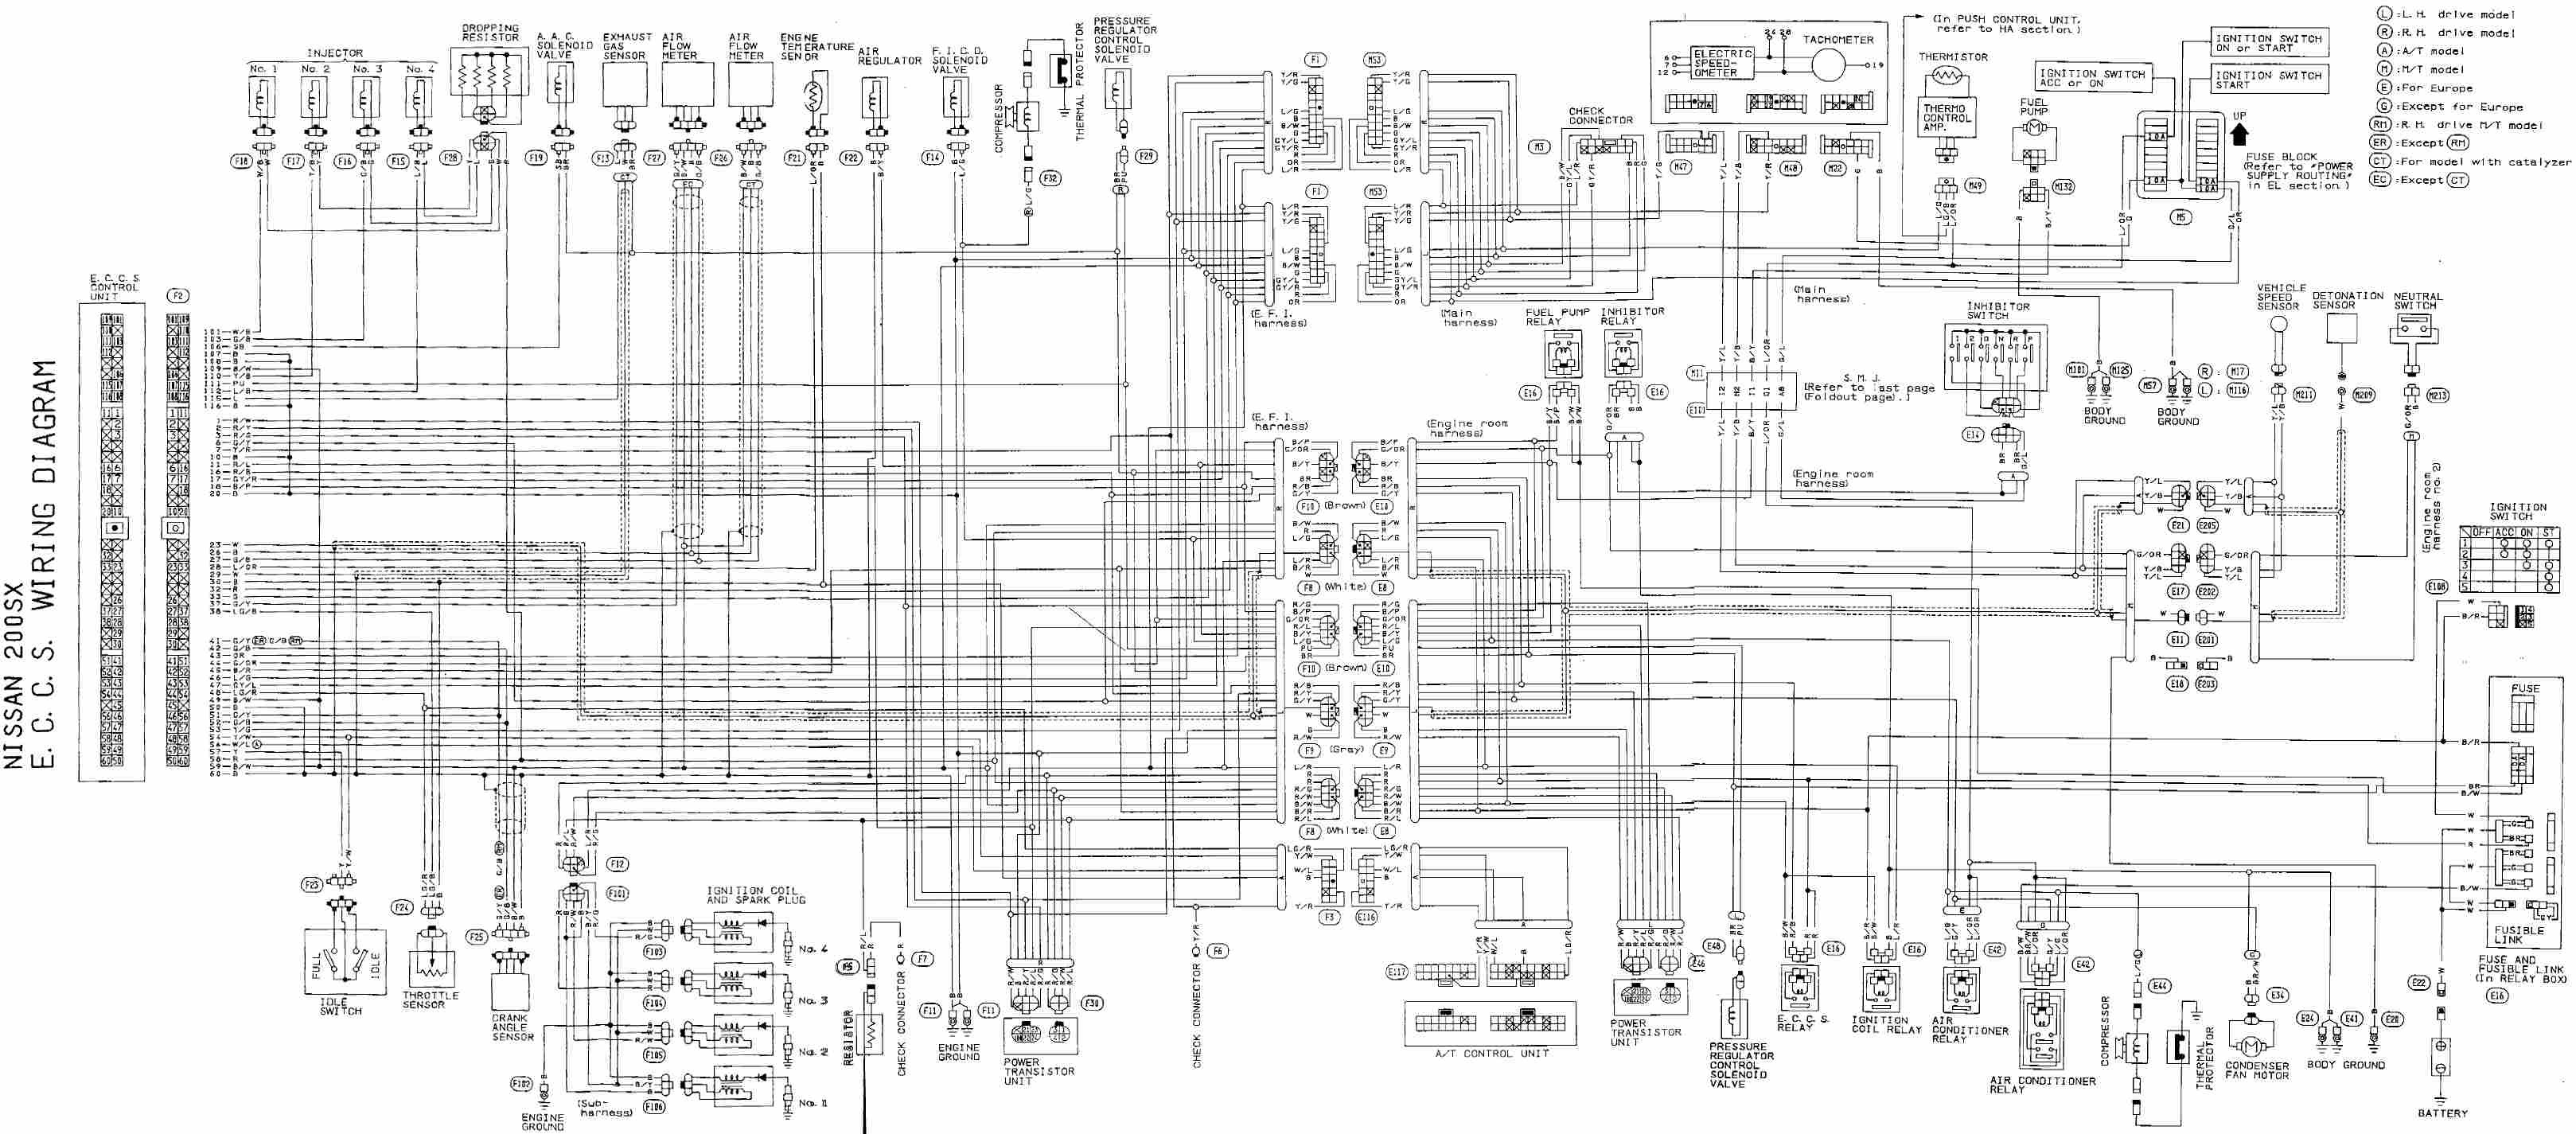 350z Engine Diagram Great Description About 2003 Nissan 350z Engine with Captivating Of 350z Engine Diagram 2005 350z Automotif and Modification